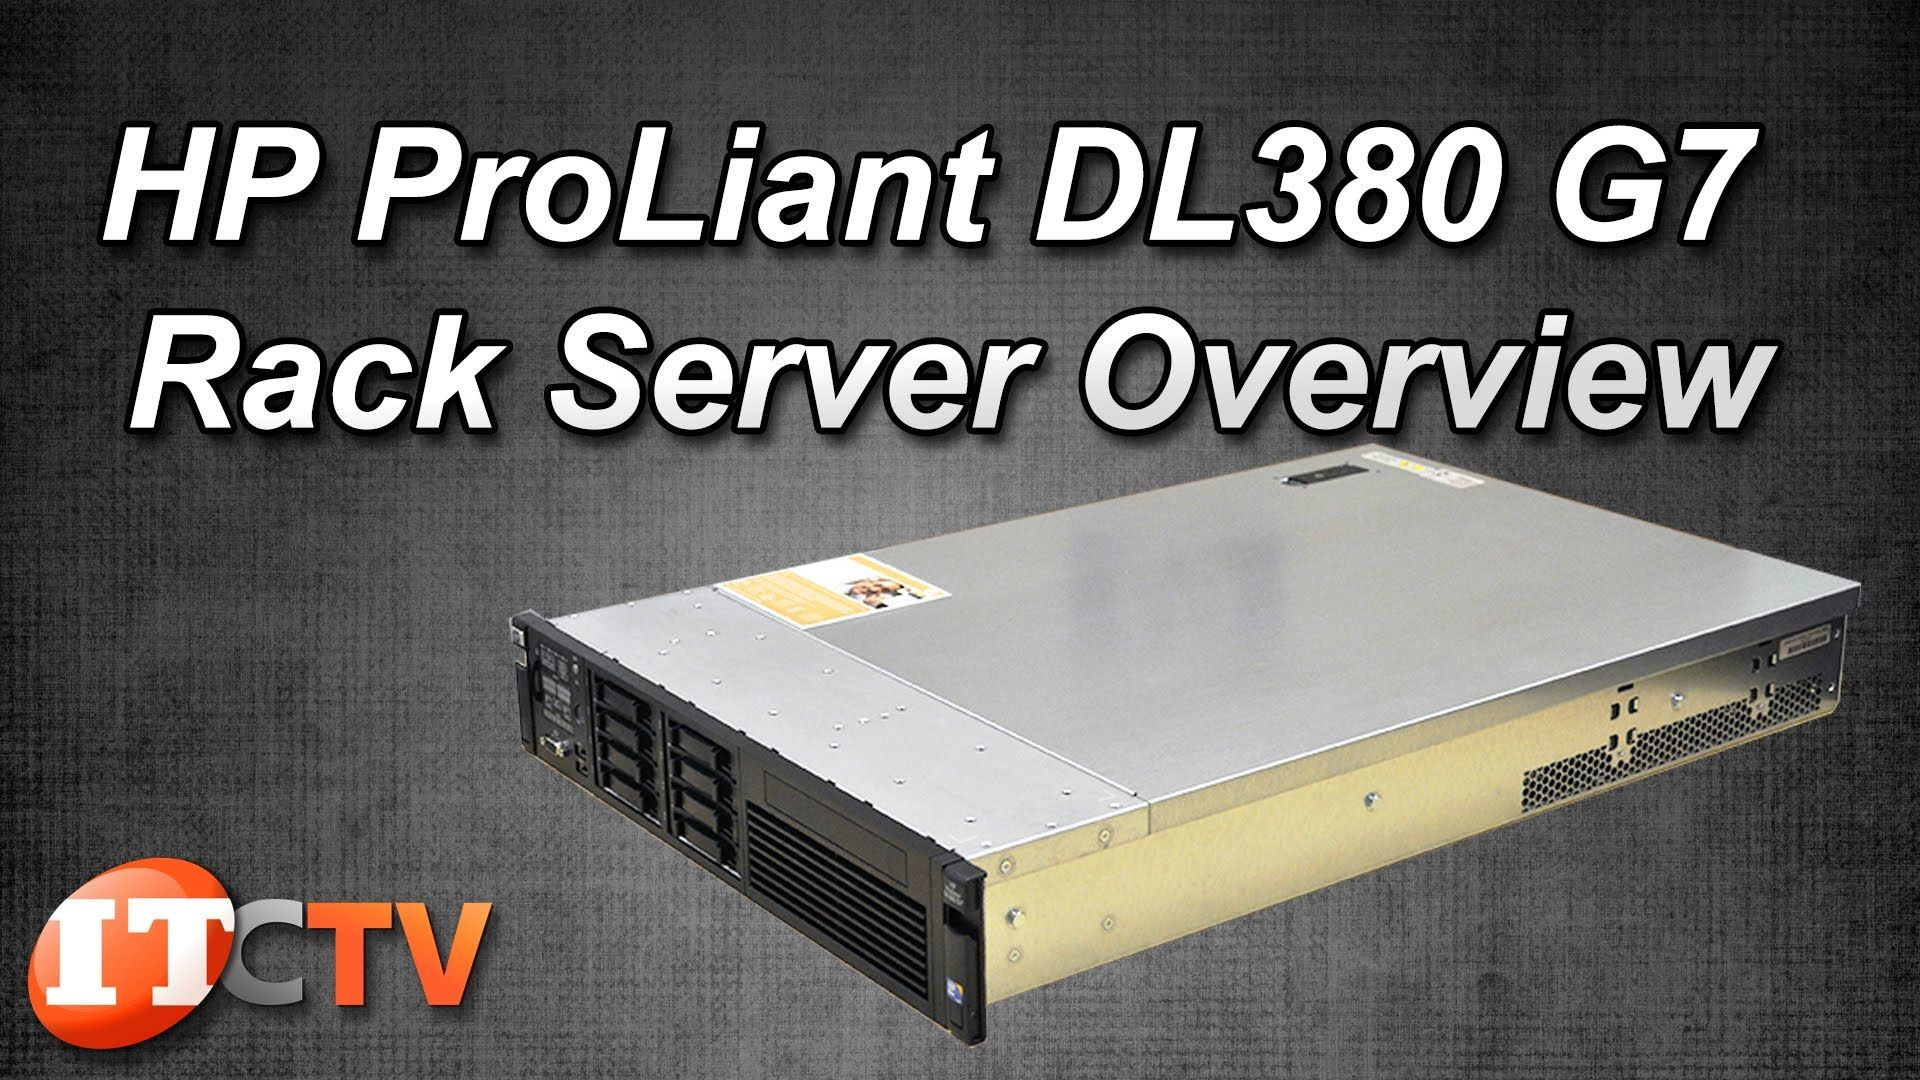 Dell inspiron 23 quot 5348 all in one desktop unboxing youtube - Hp Proliant Dl380 G9 Rack Server Overview Great Video On Youtube Check Out Itcreationstv For More Product Reviews Hpe Servers Pinterest